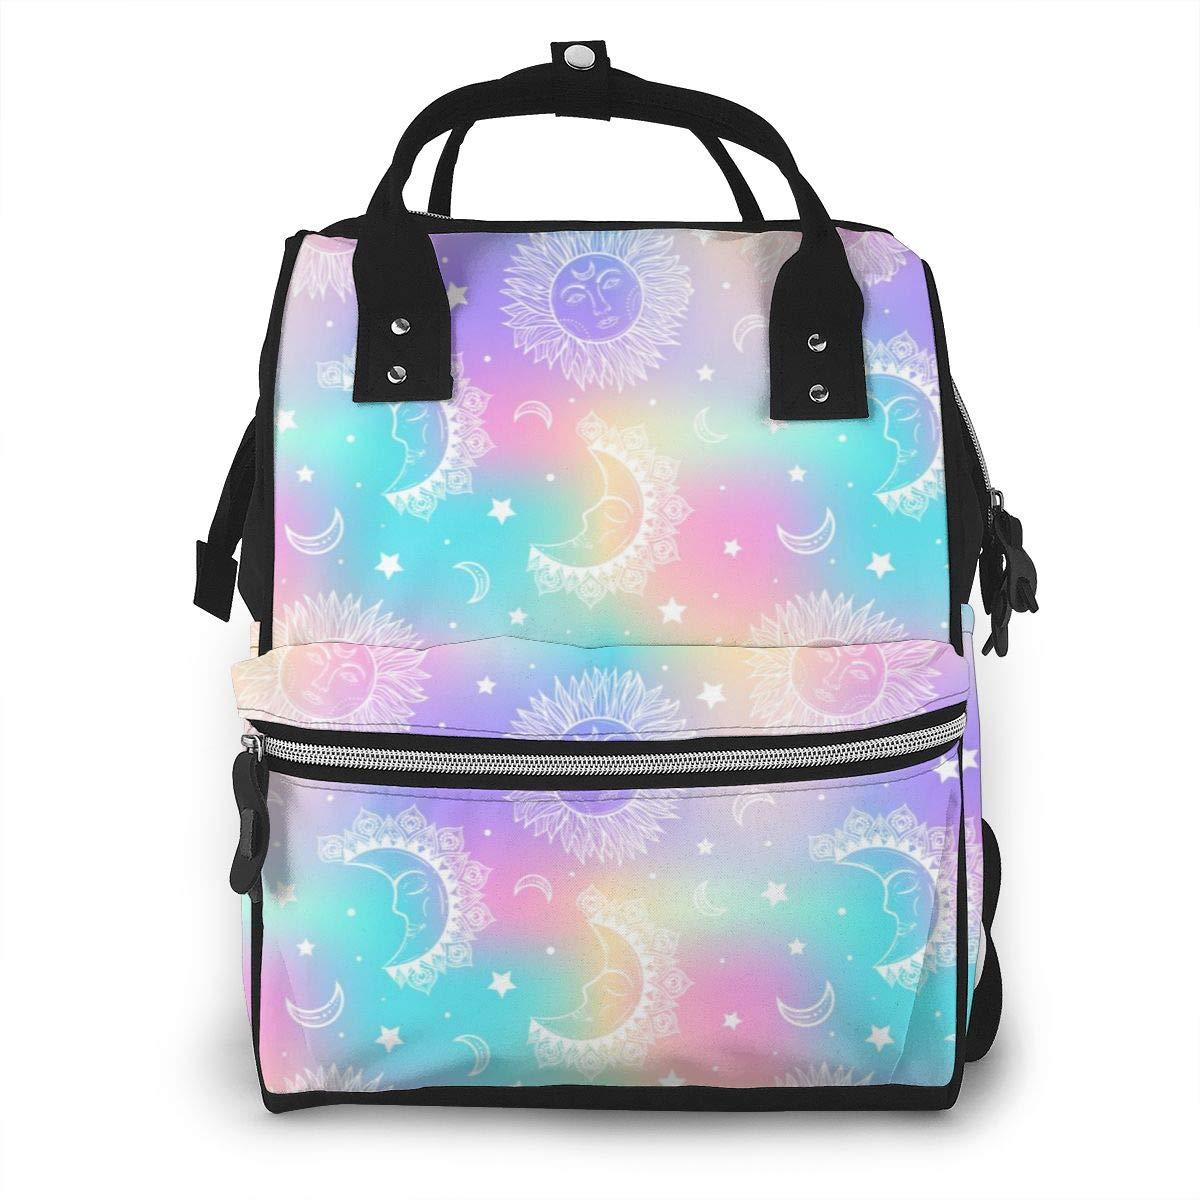 Galaxy Sun and Moon Stars Large Capacity Diaper Nappy Travel Nursing Bag Mummy Mom Backpack Laptop Multi-Function for Baby Care Women Family